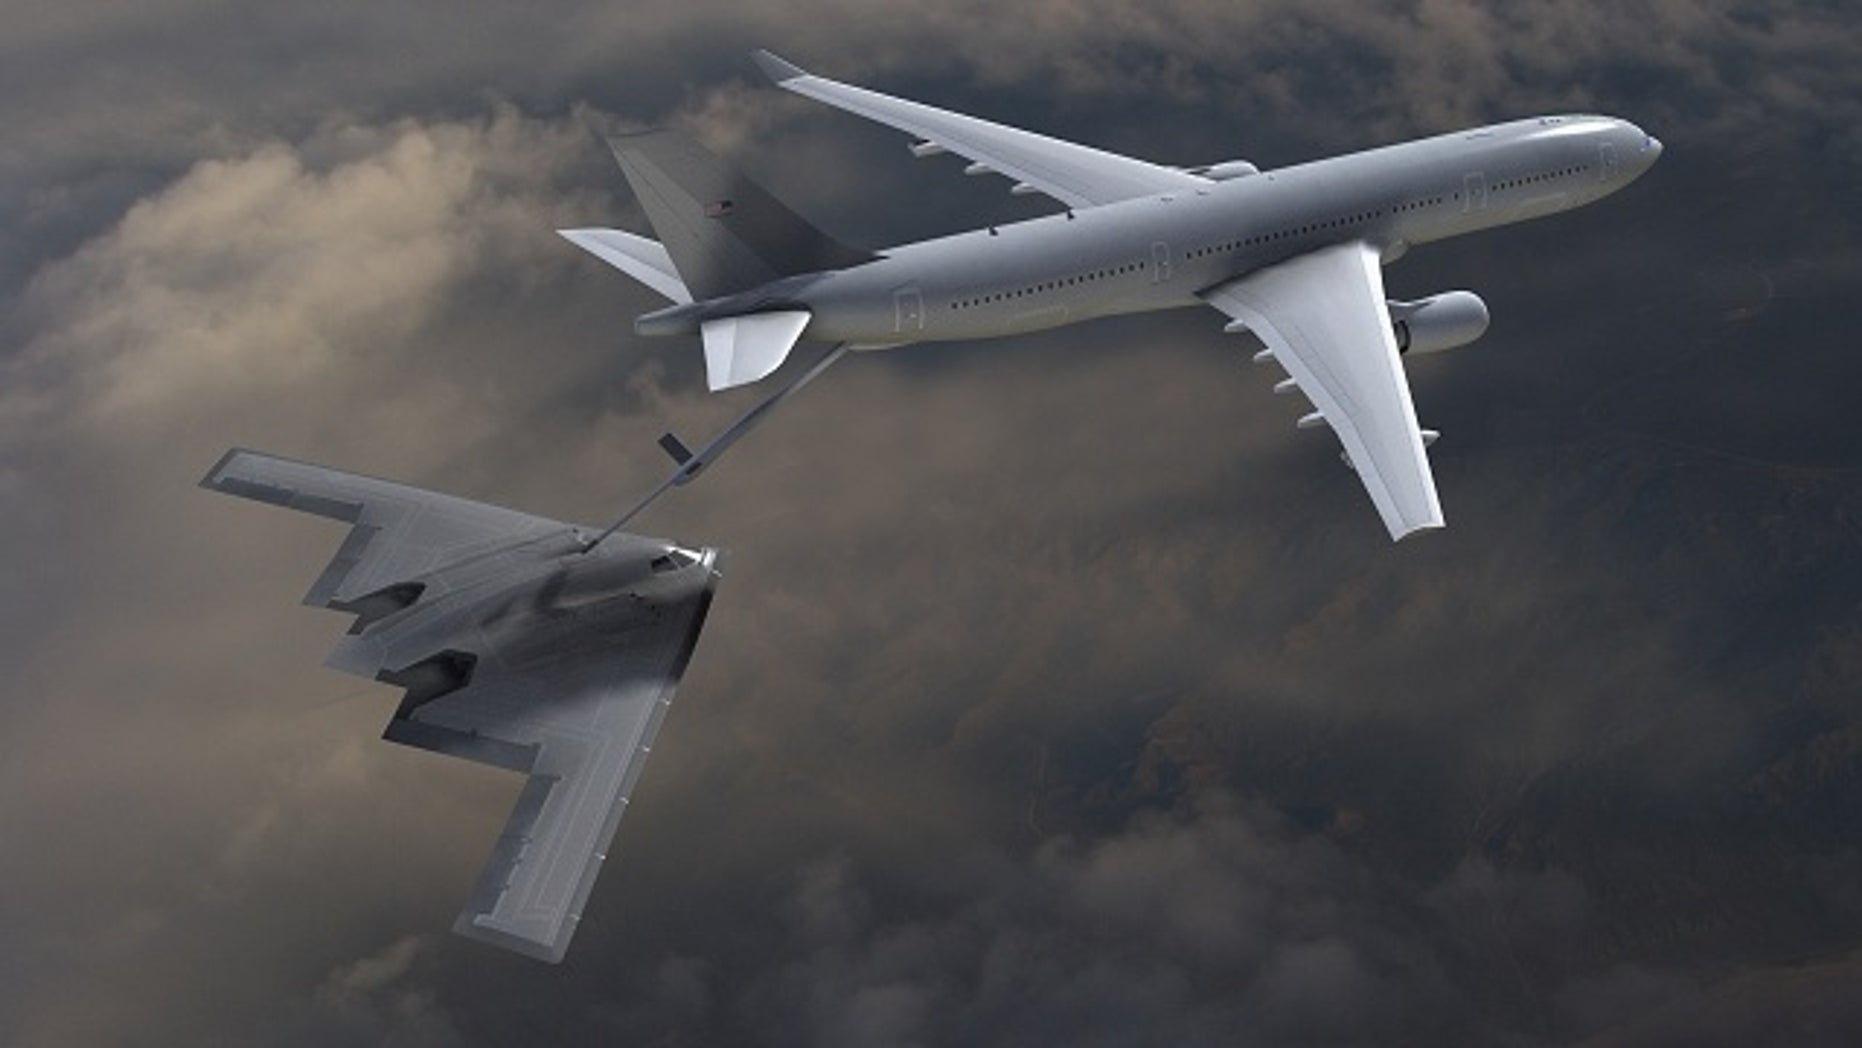 The KC-45 is derived from the A330 widebody twin-engine passenger jet, and can refuel the military's aircraft in flight.